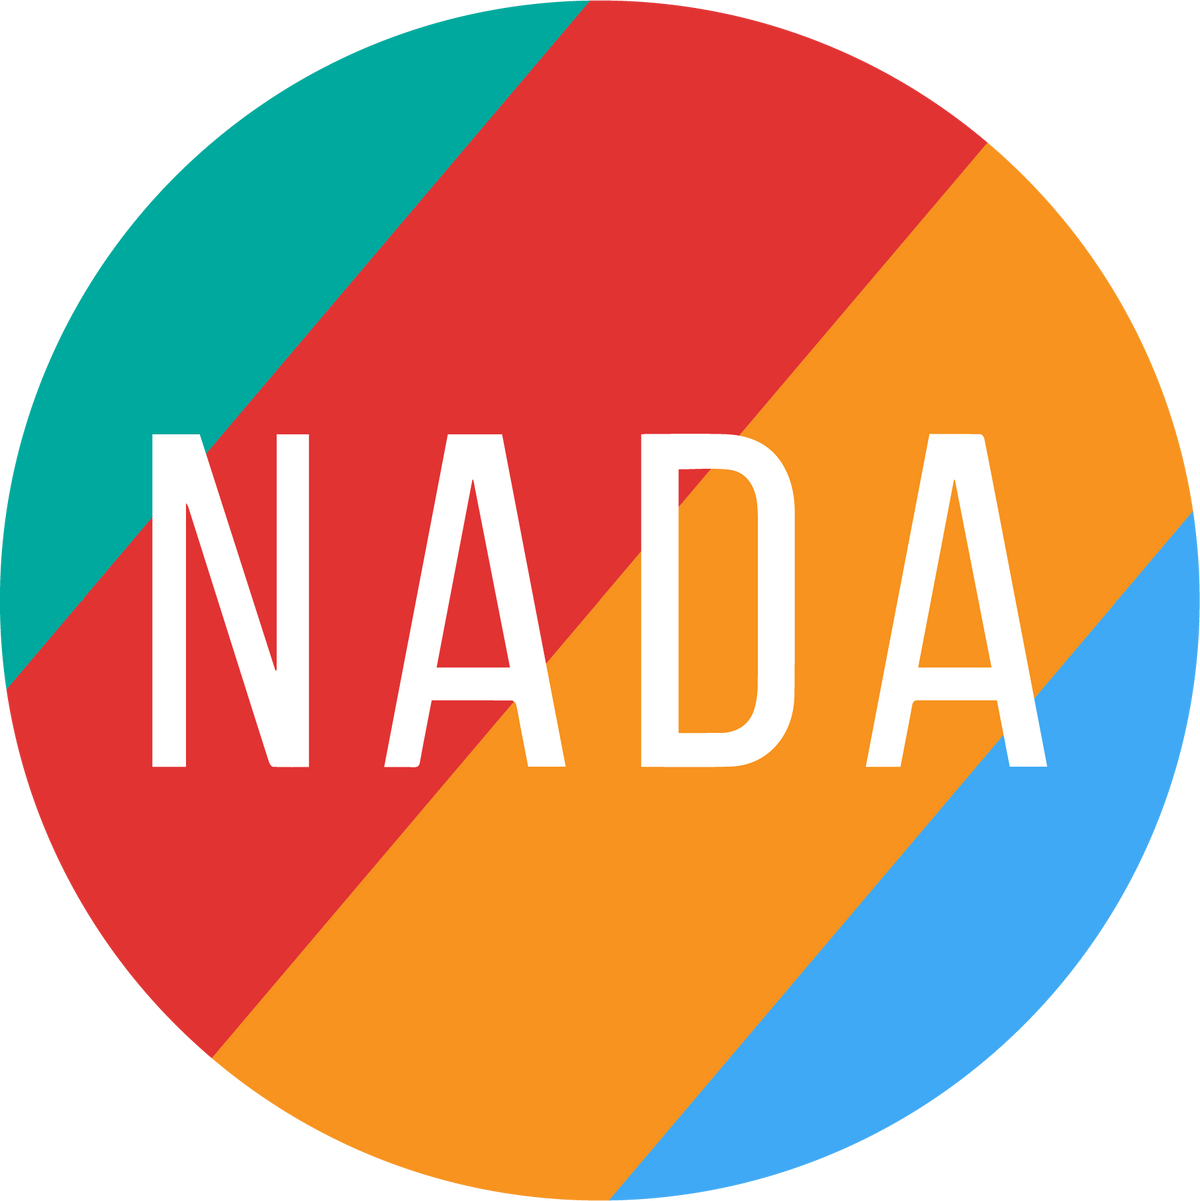 THE NADA SHOP – The Nada Shop